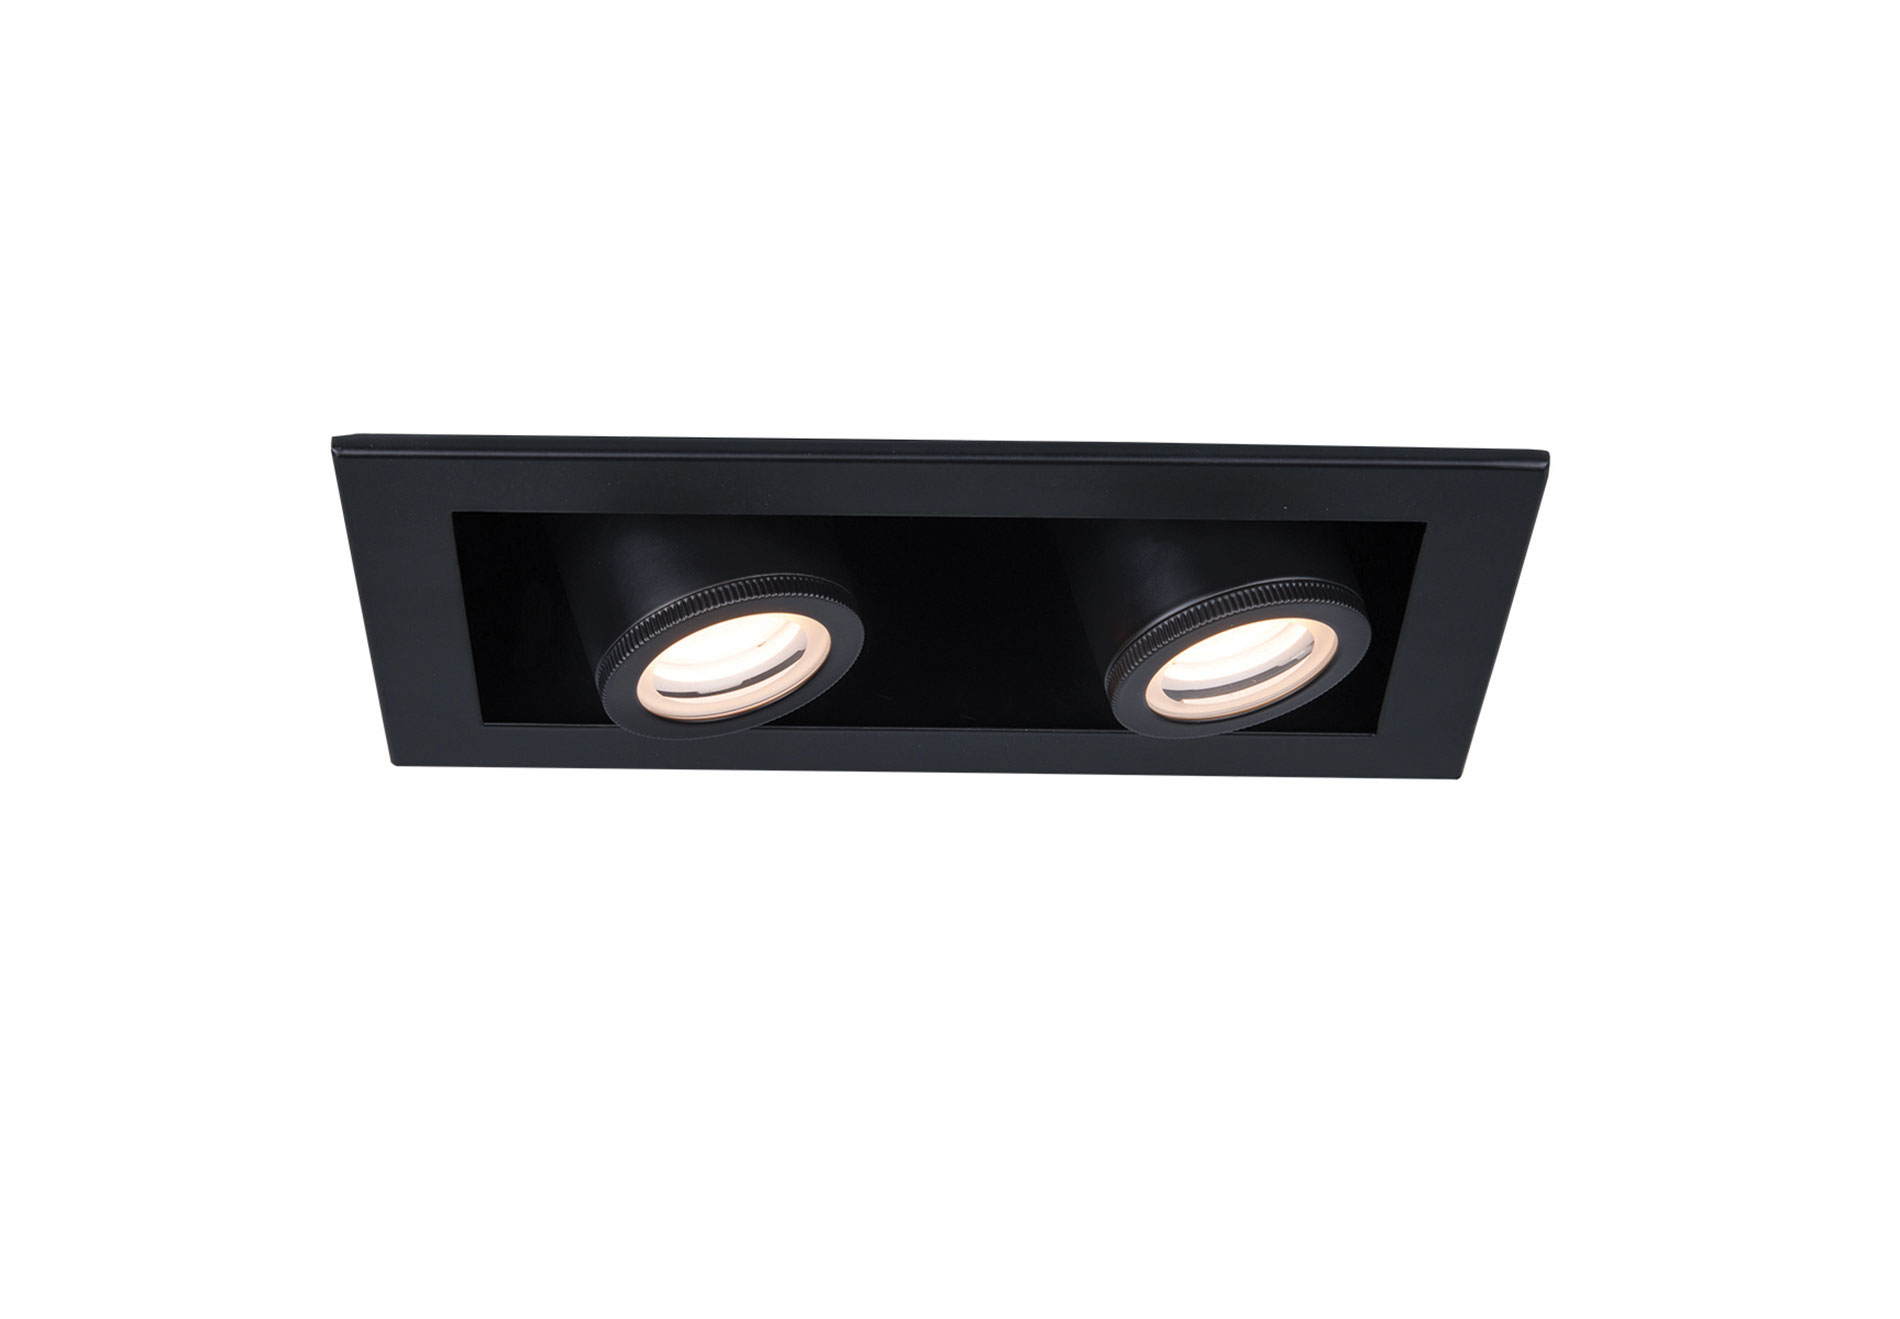 Wac Lighting S Silo Series Led Recessed